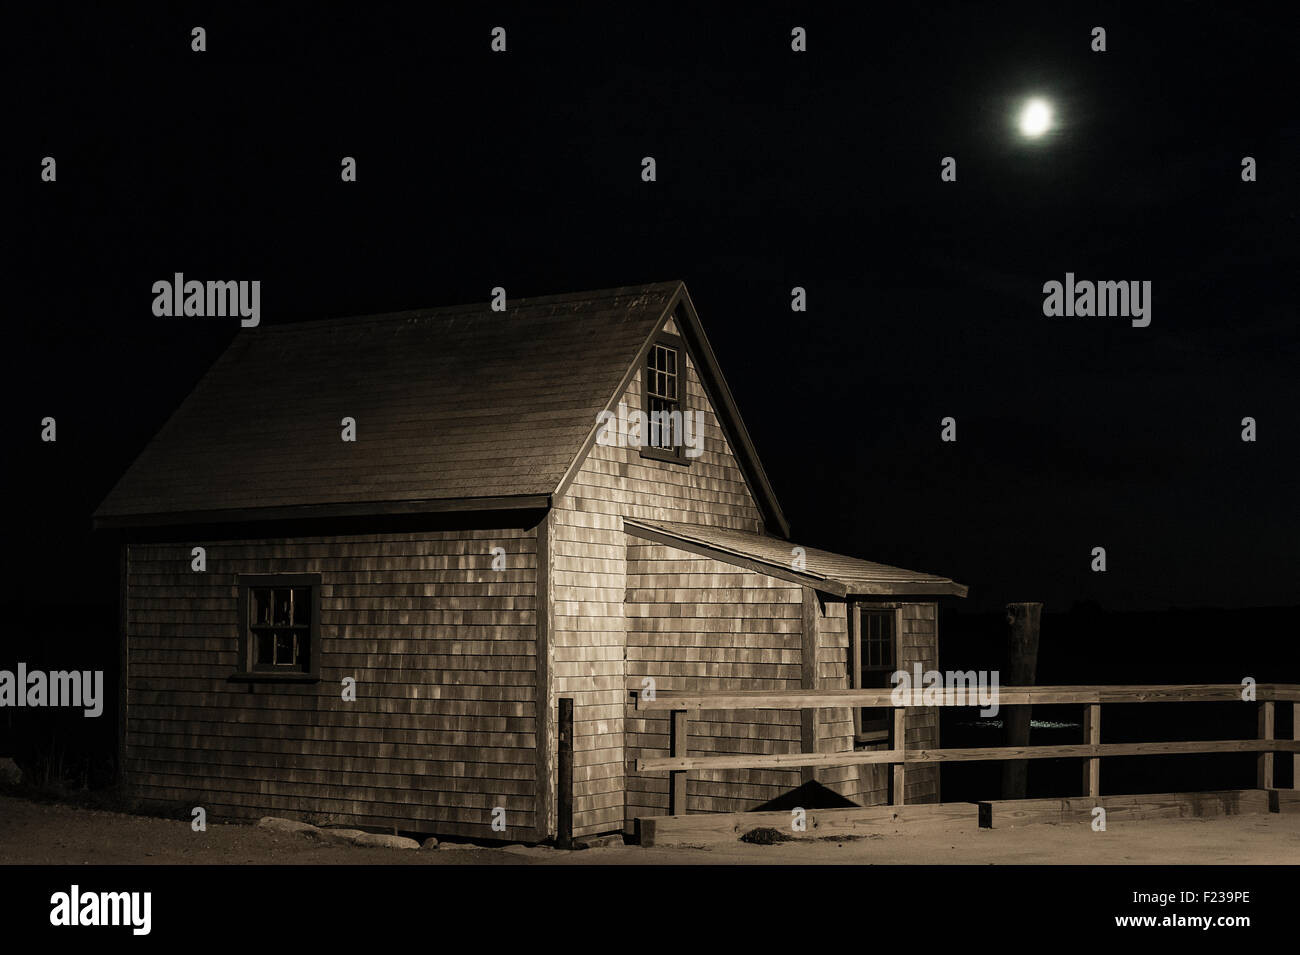 Full moon shines on moody coastal shanty. - Stock Image